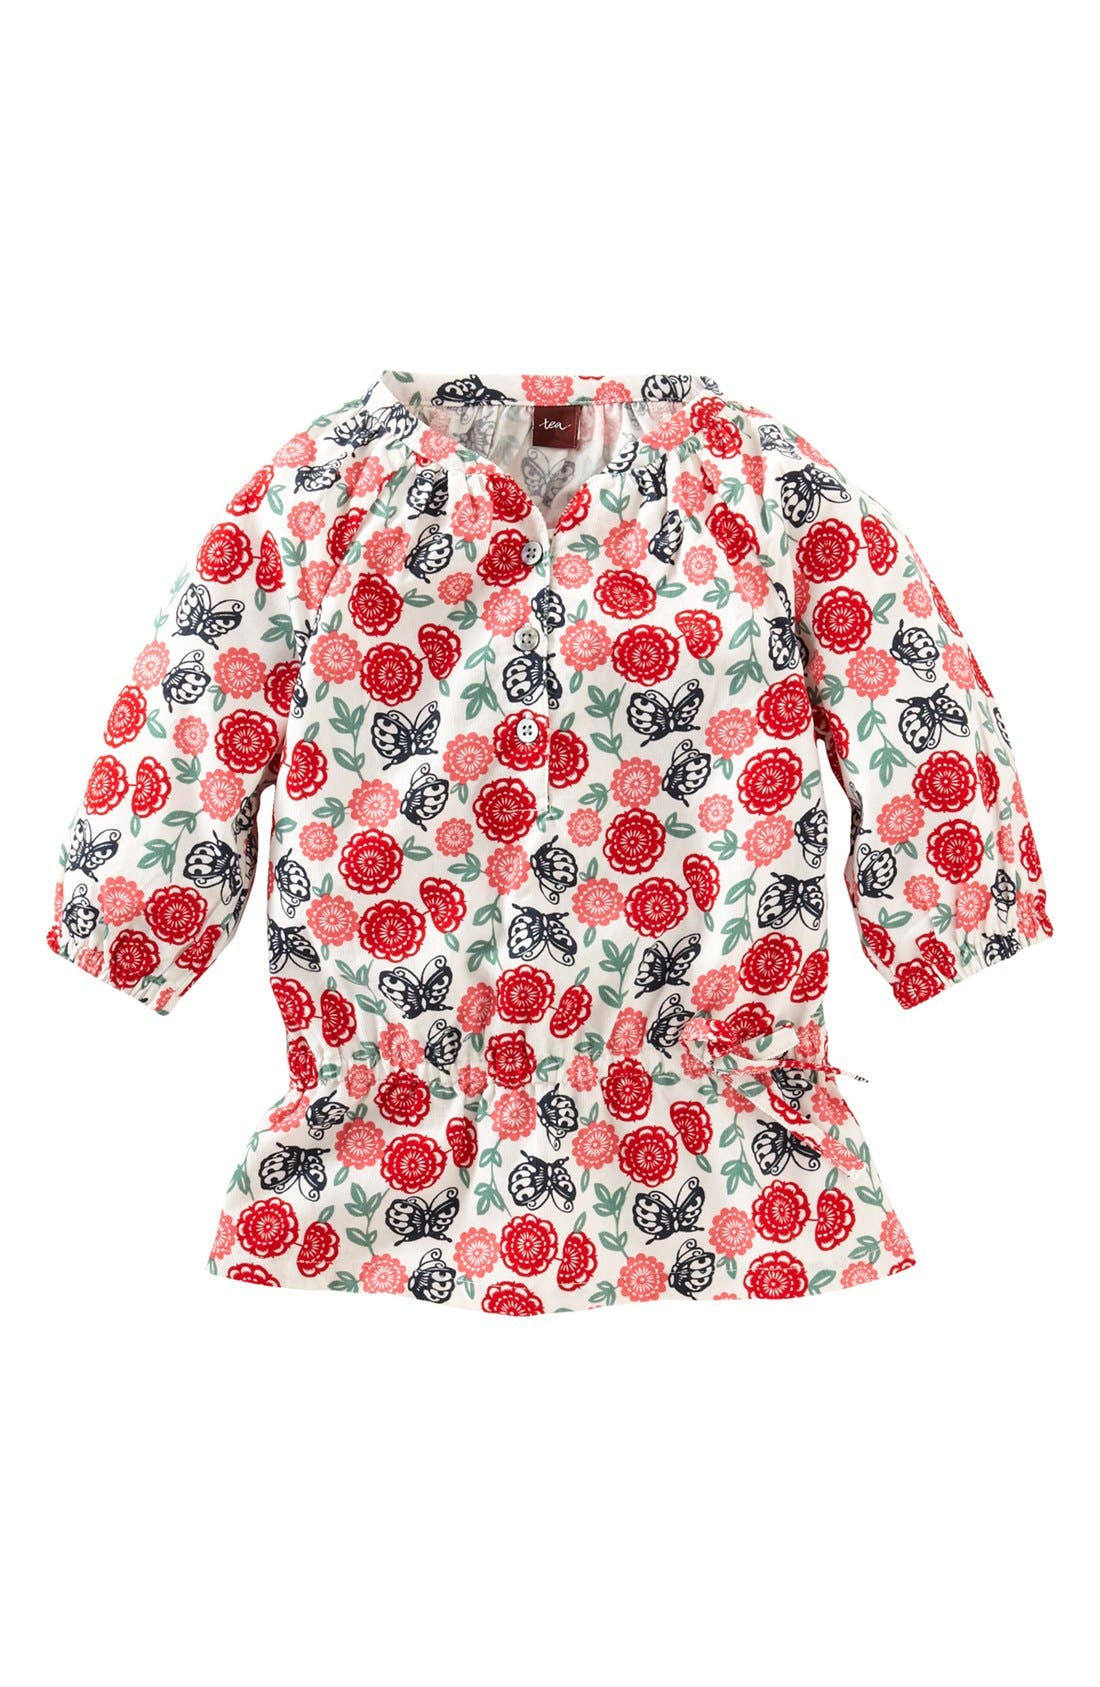 Main Image - Tea Collection 'Butterfly' Corduroy Top (Little Girls & Big Girls)